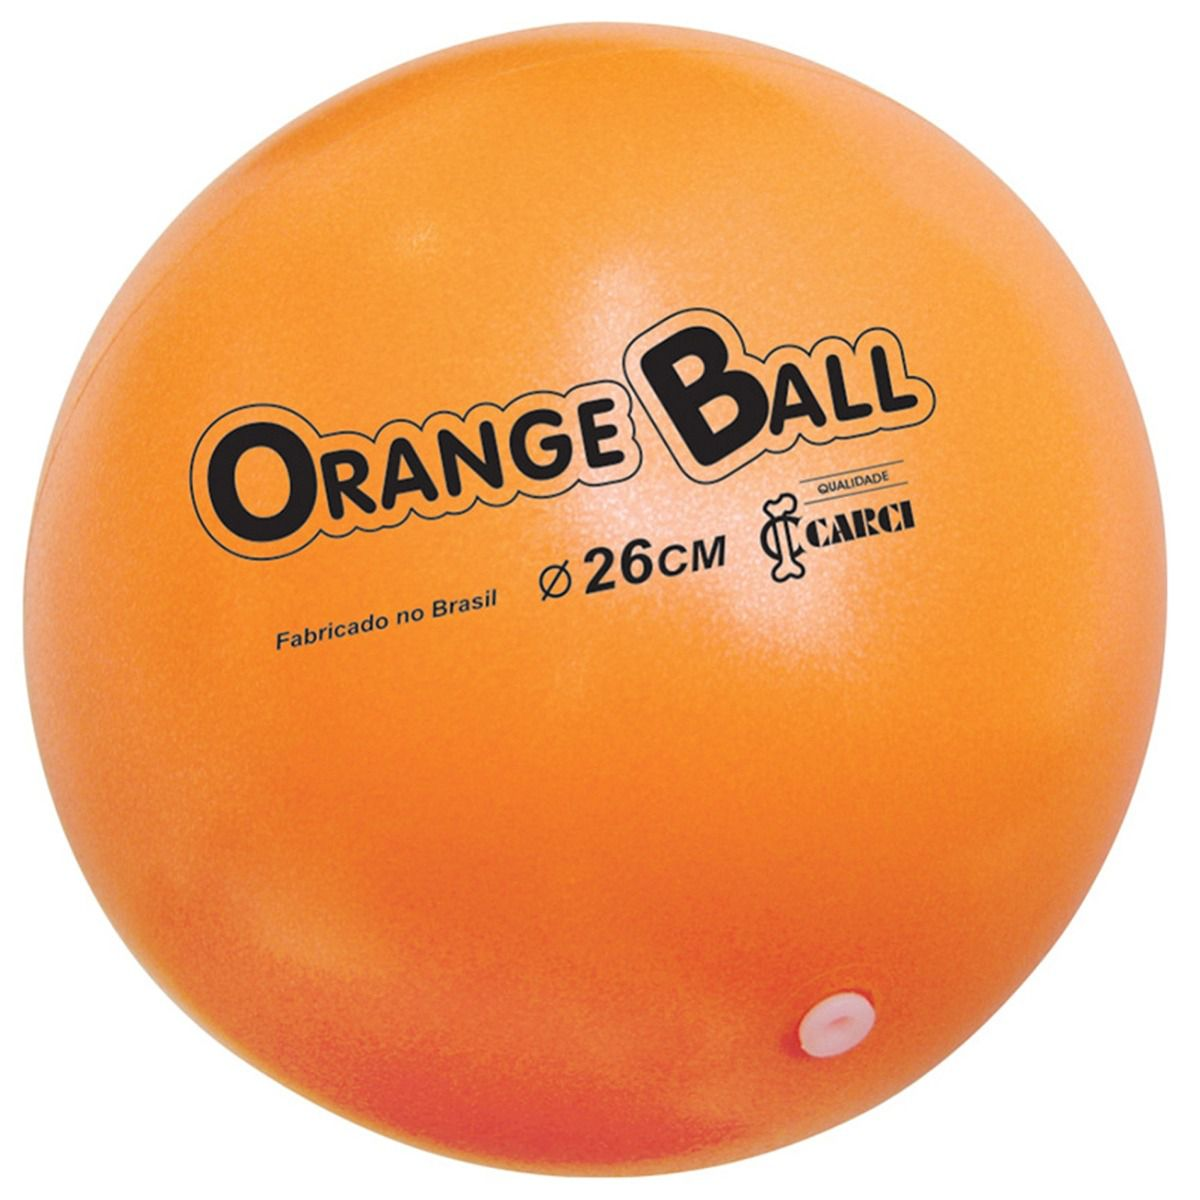 Orange Ball Carci 26 cm Bl.01.26